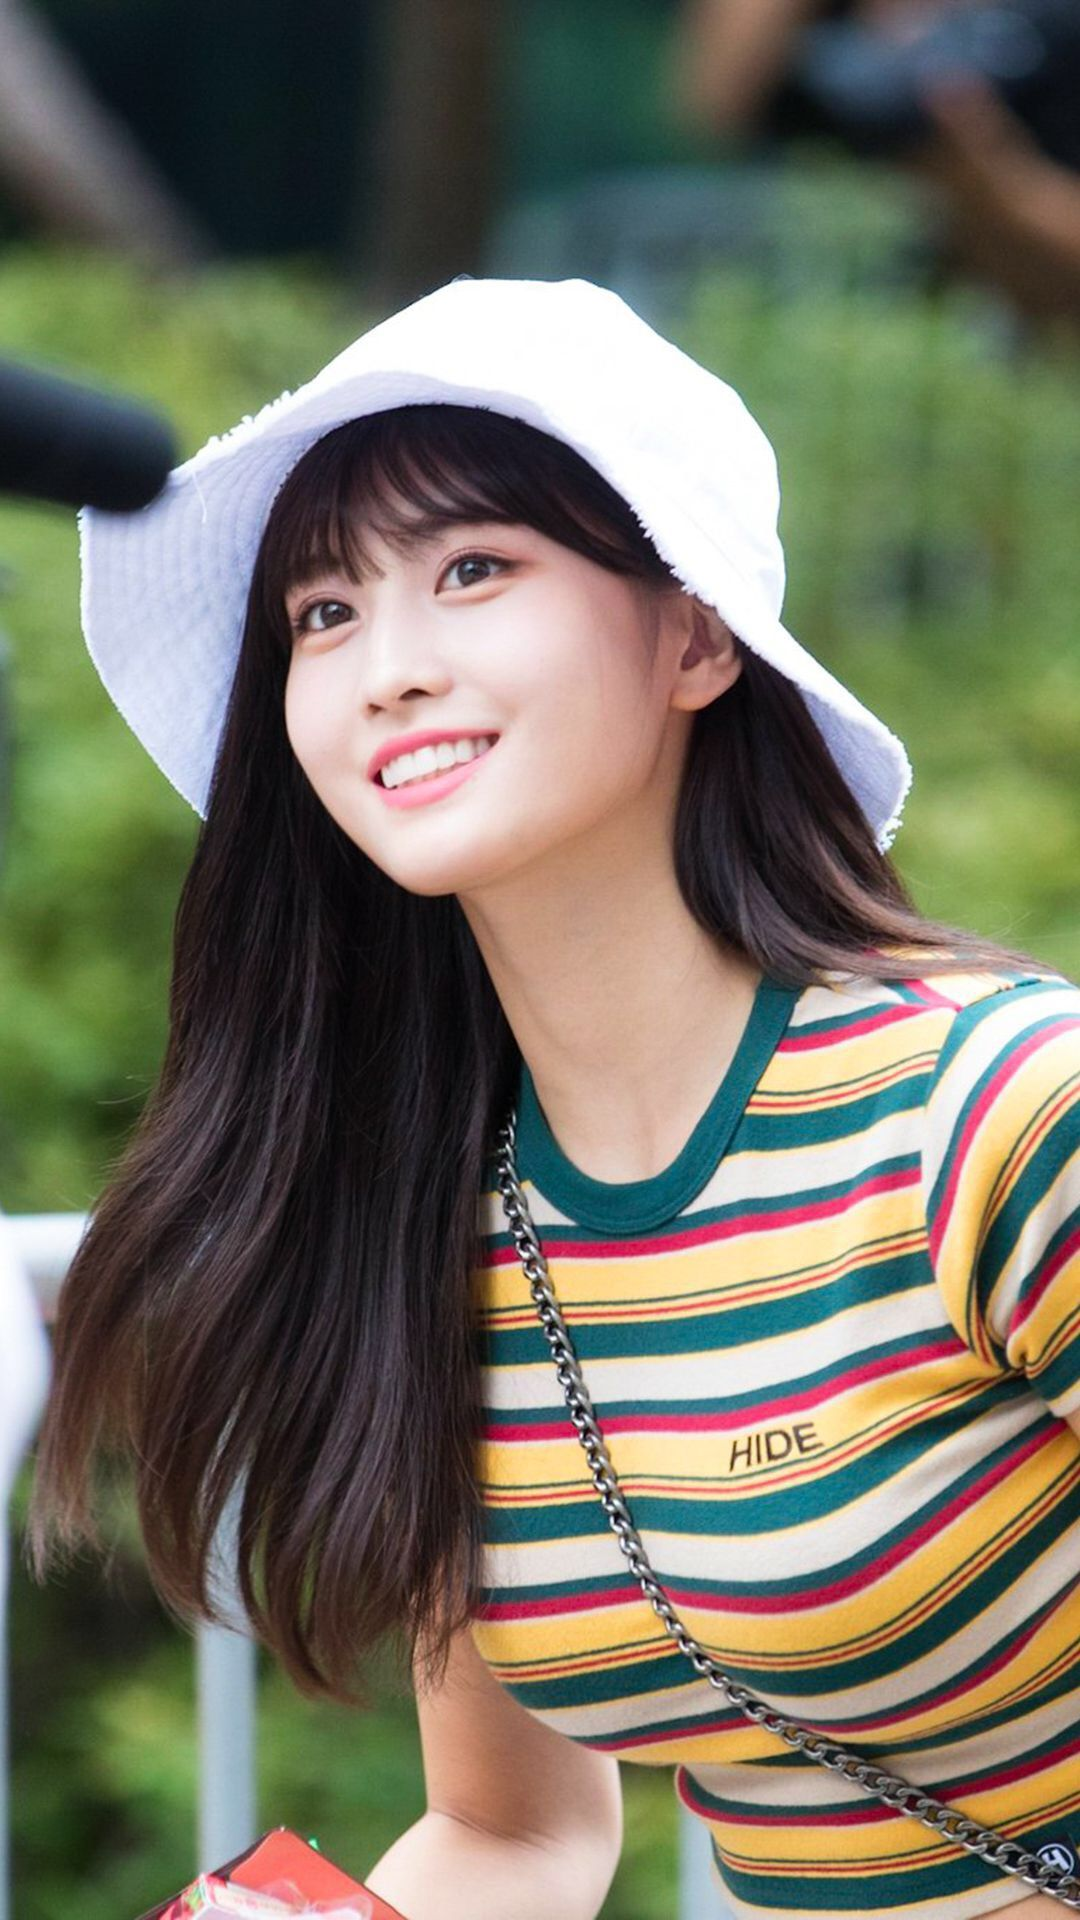 Momo Hirai (born Nov. 9, 1996 in Kyoto, Japan), better known as Momo, is a Japanese singer, dancer and member of the K-Pop group Twice.